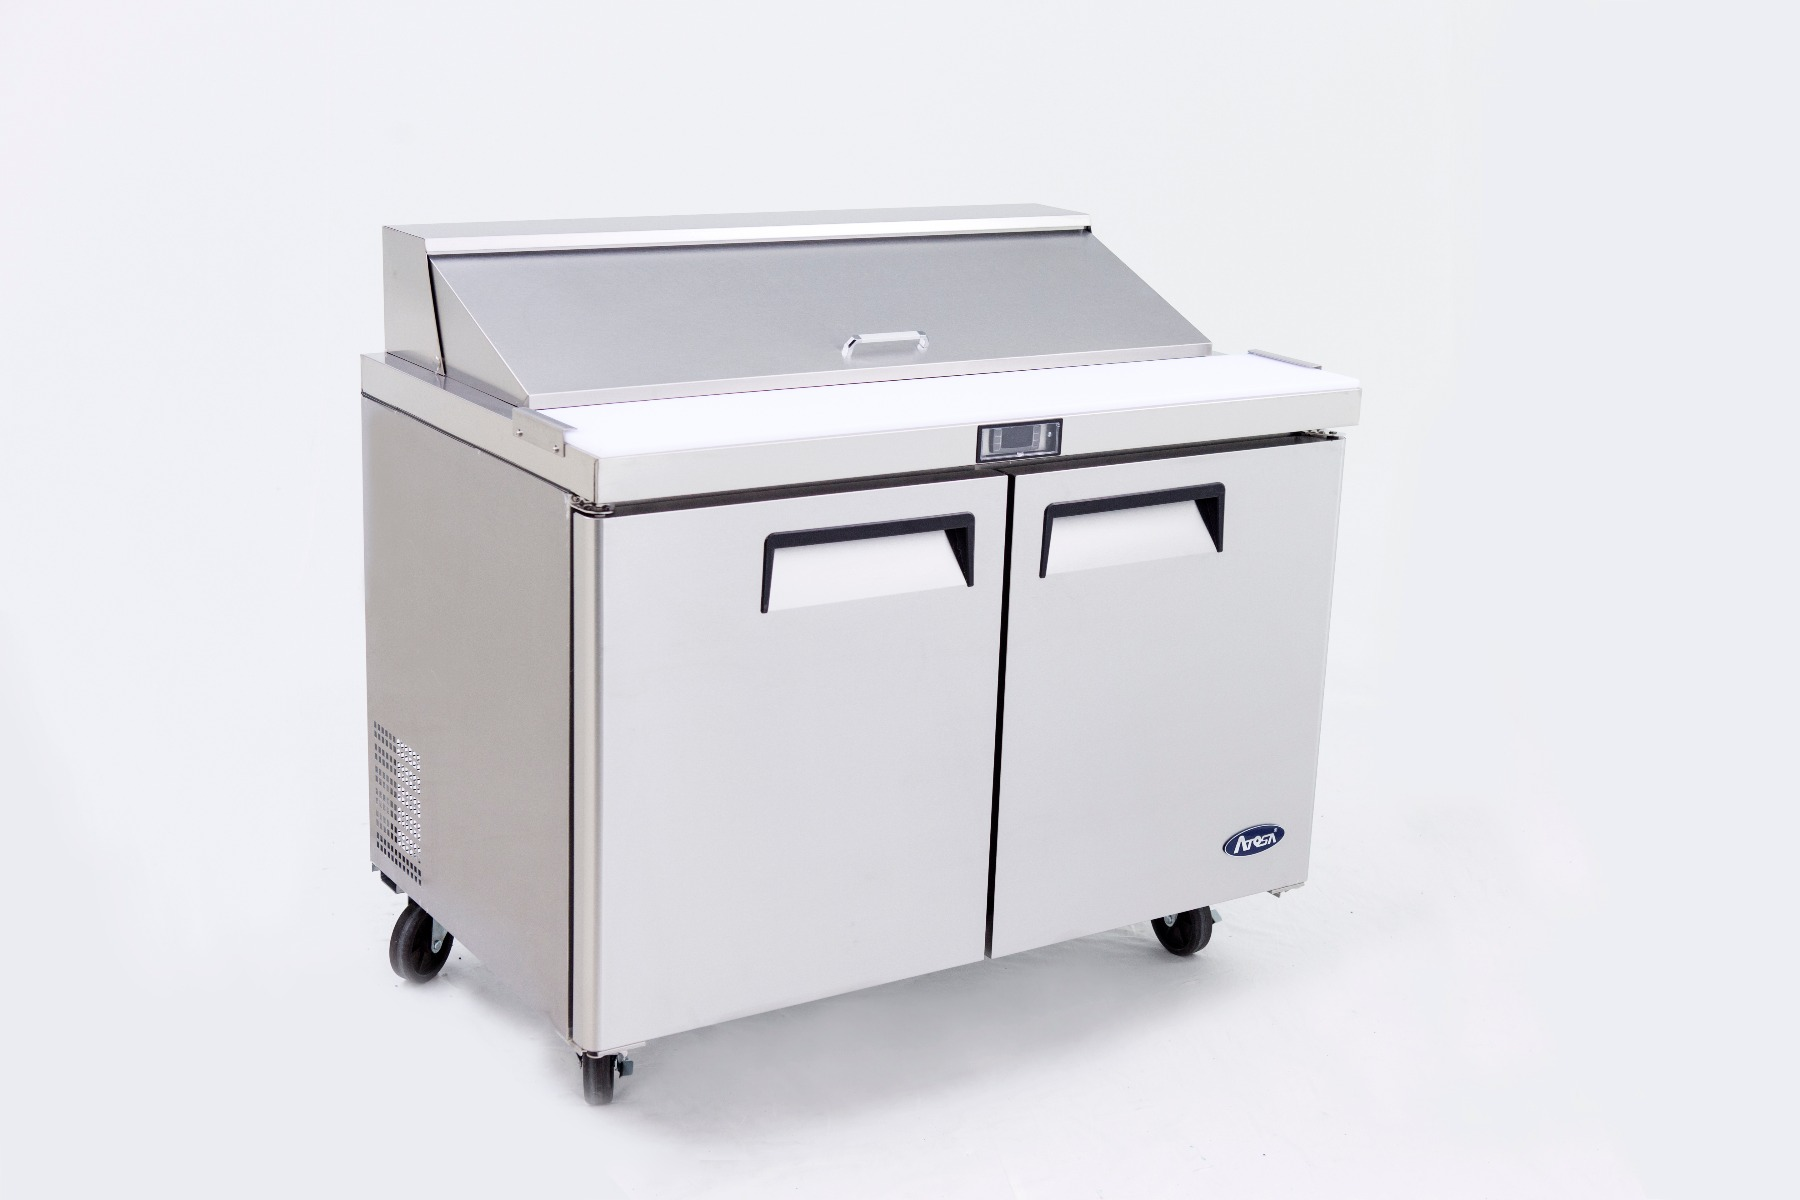 2 Door Sandwich Prep Table Refrigerator 1225 mm